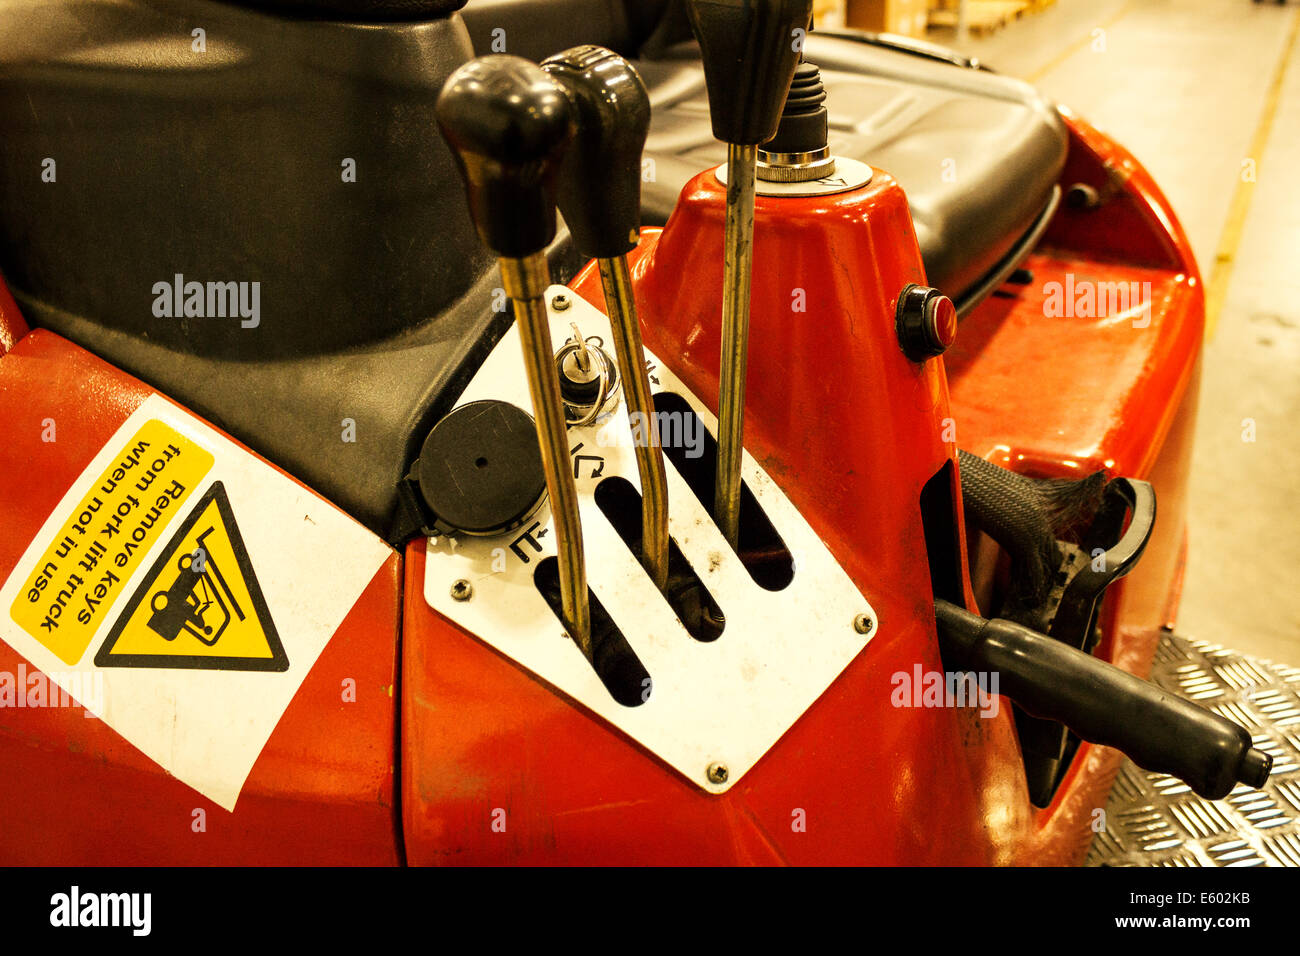 Worn warehouse forklift close up of control levers and seating area. - Stock Image